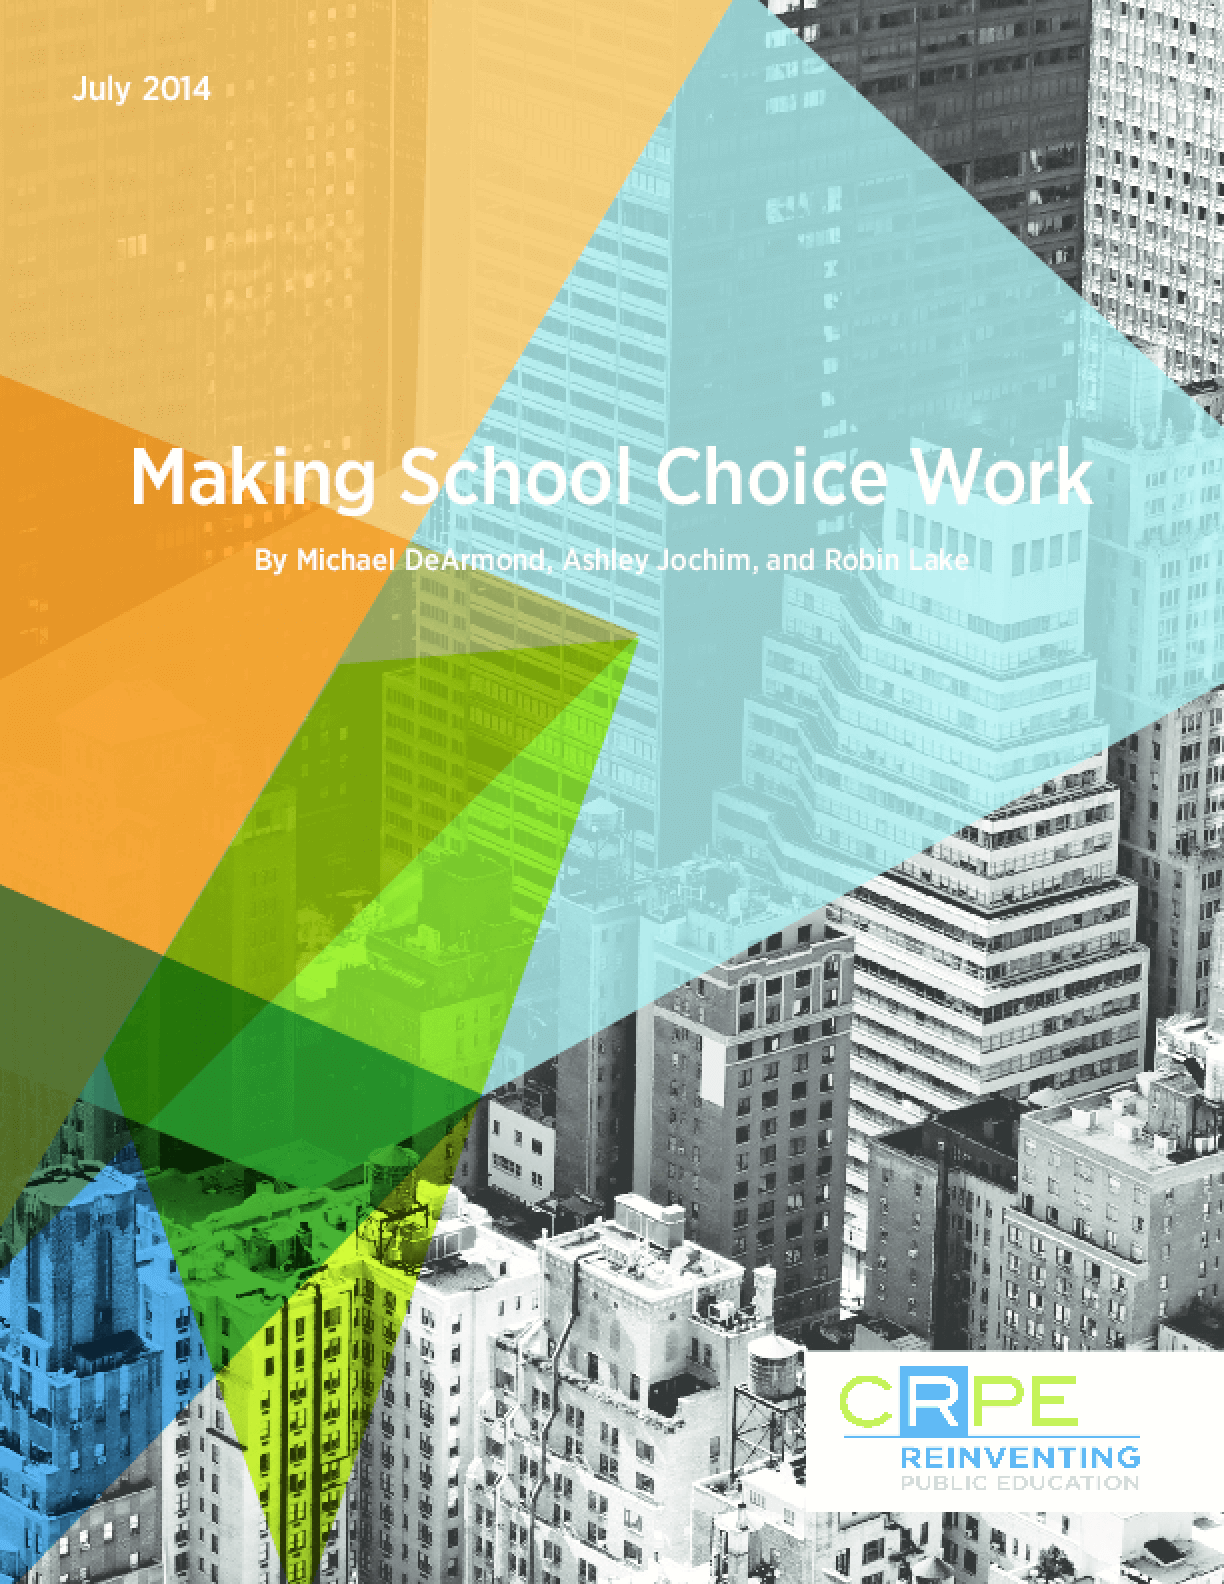 Making School Choice Work